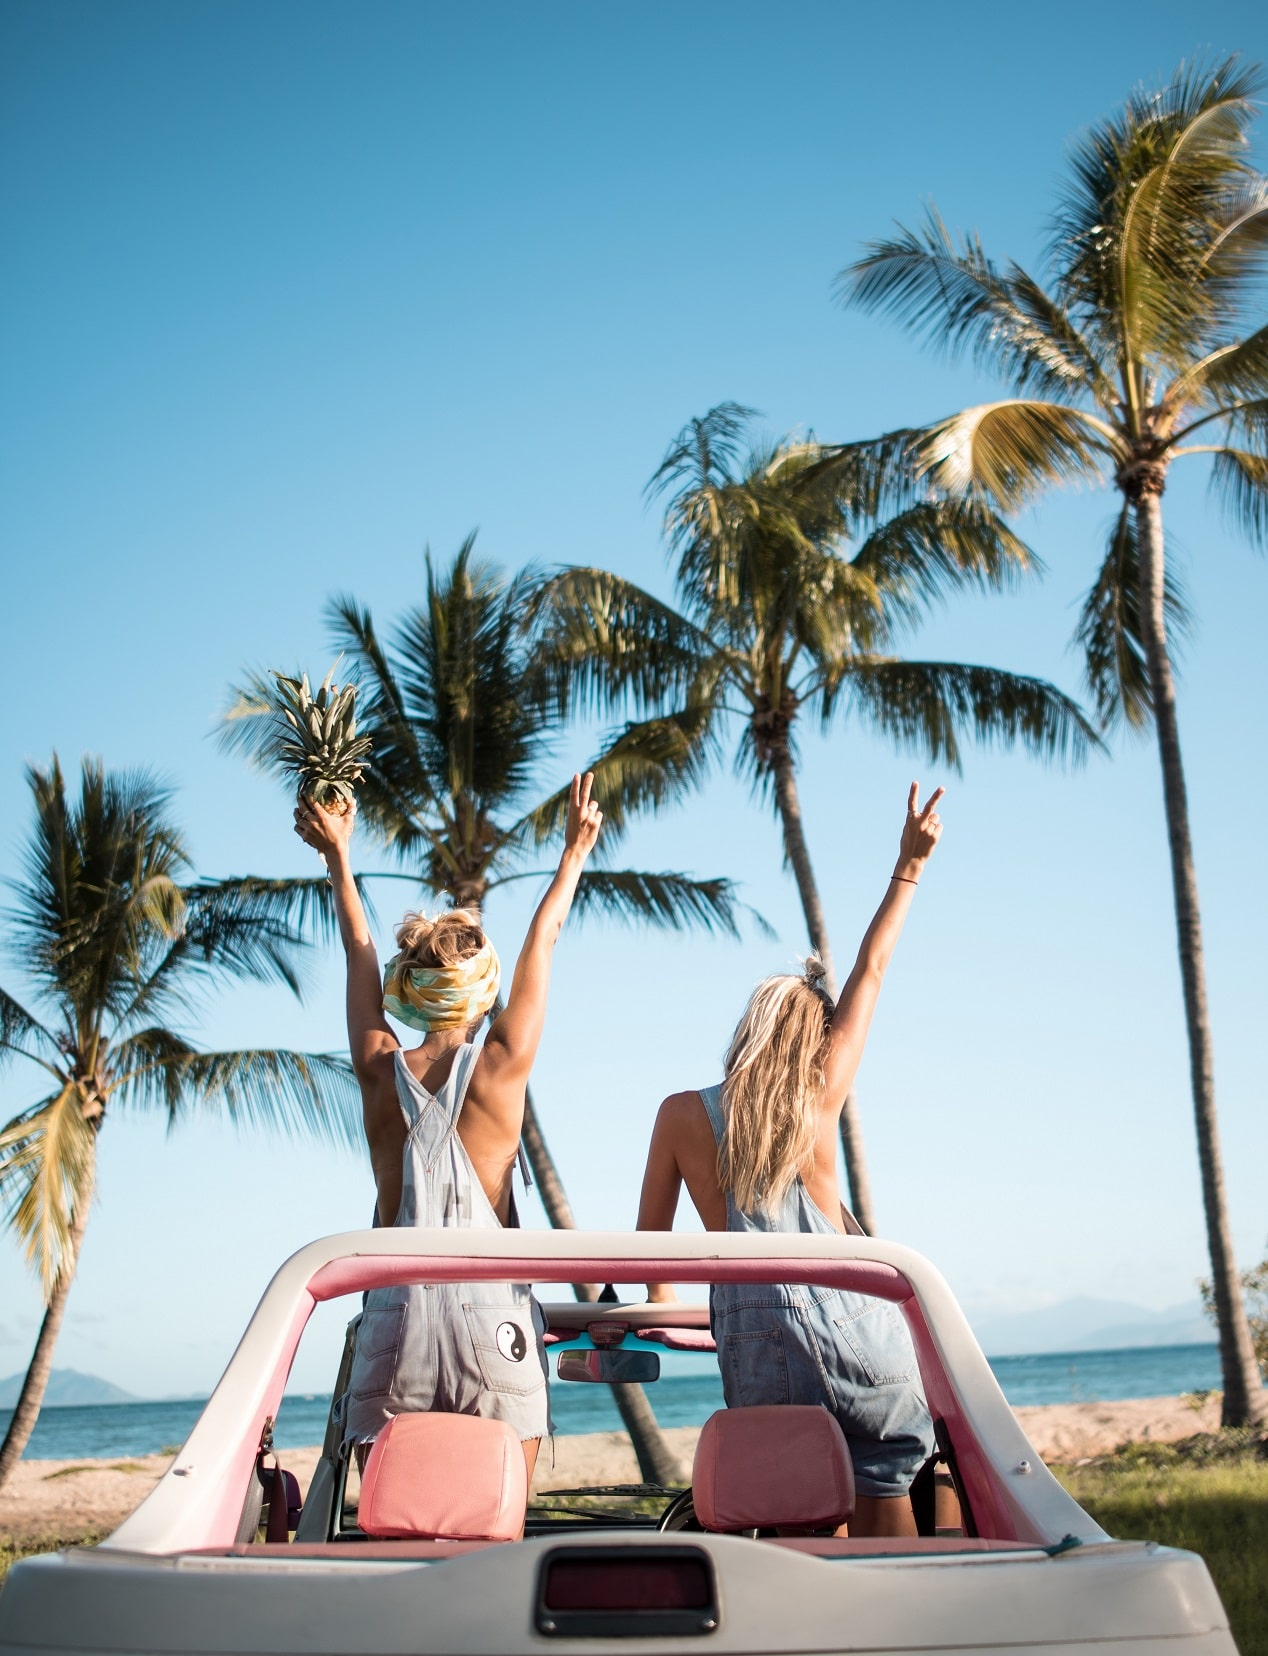 Tropical Topless Car Hire, Magnetic Island, QLD